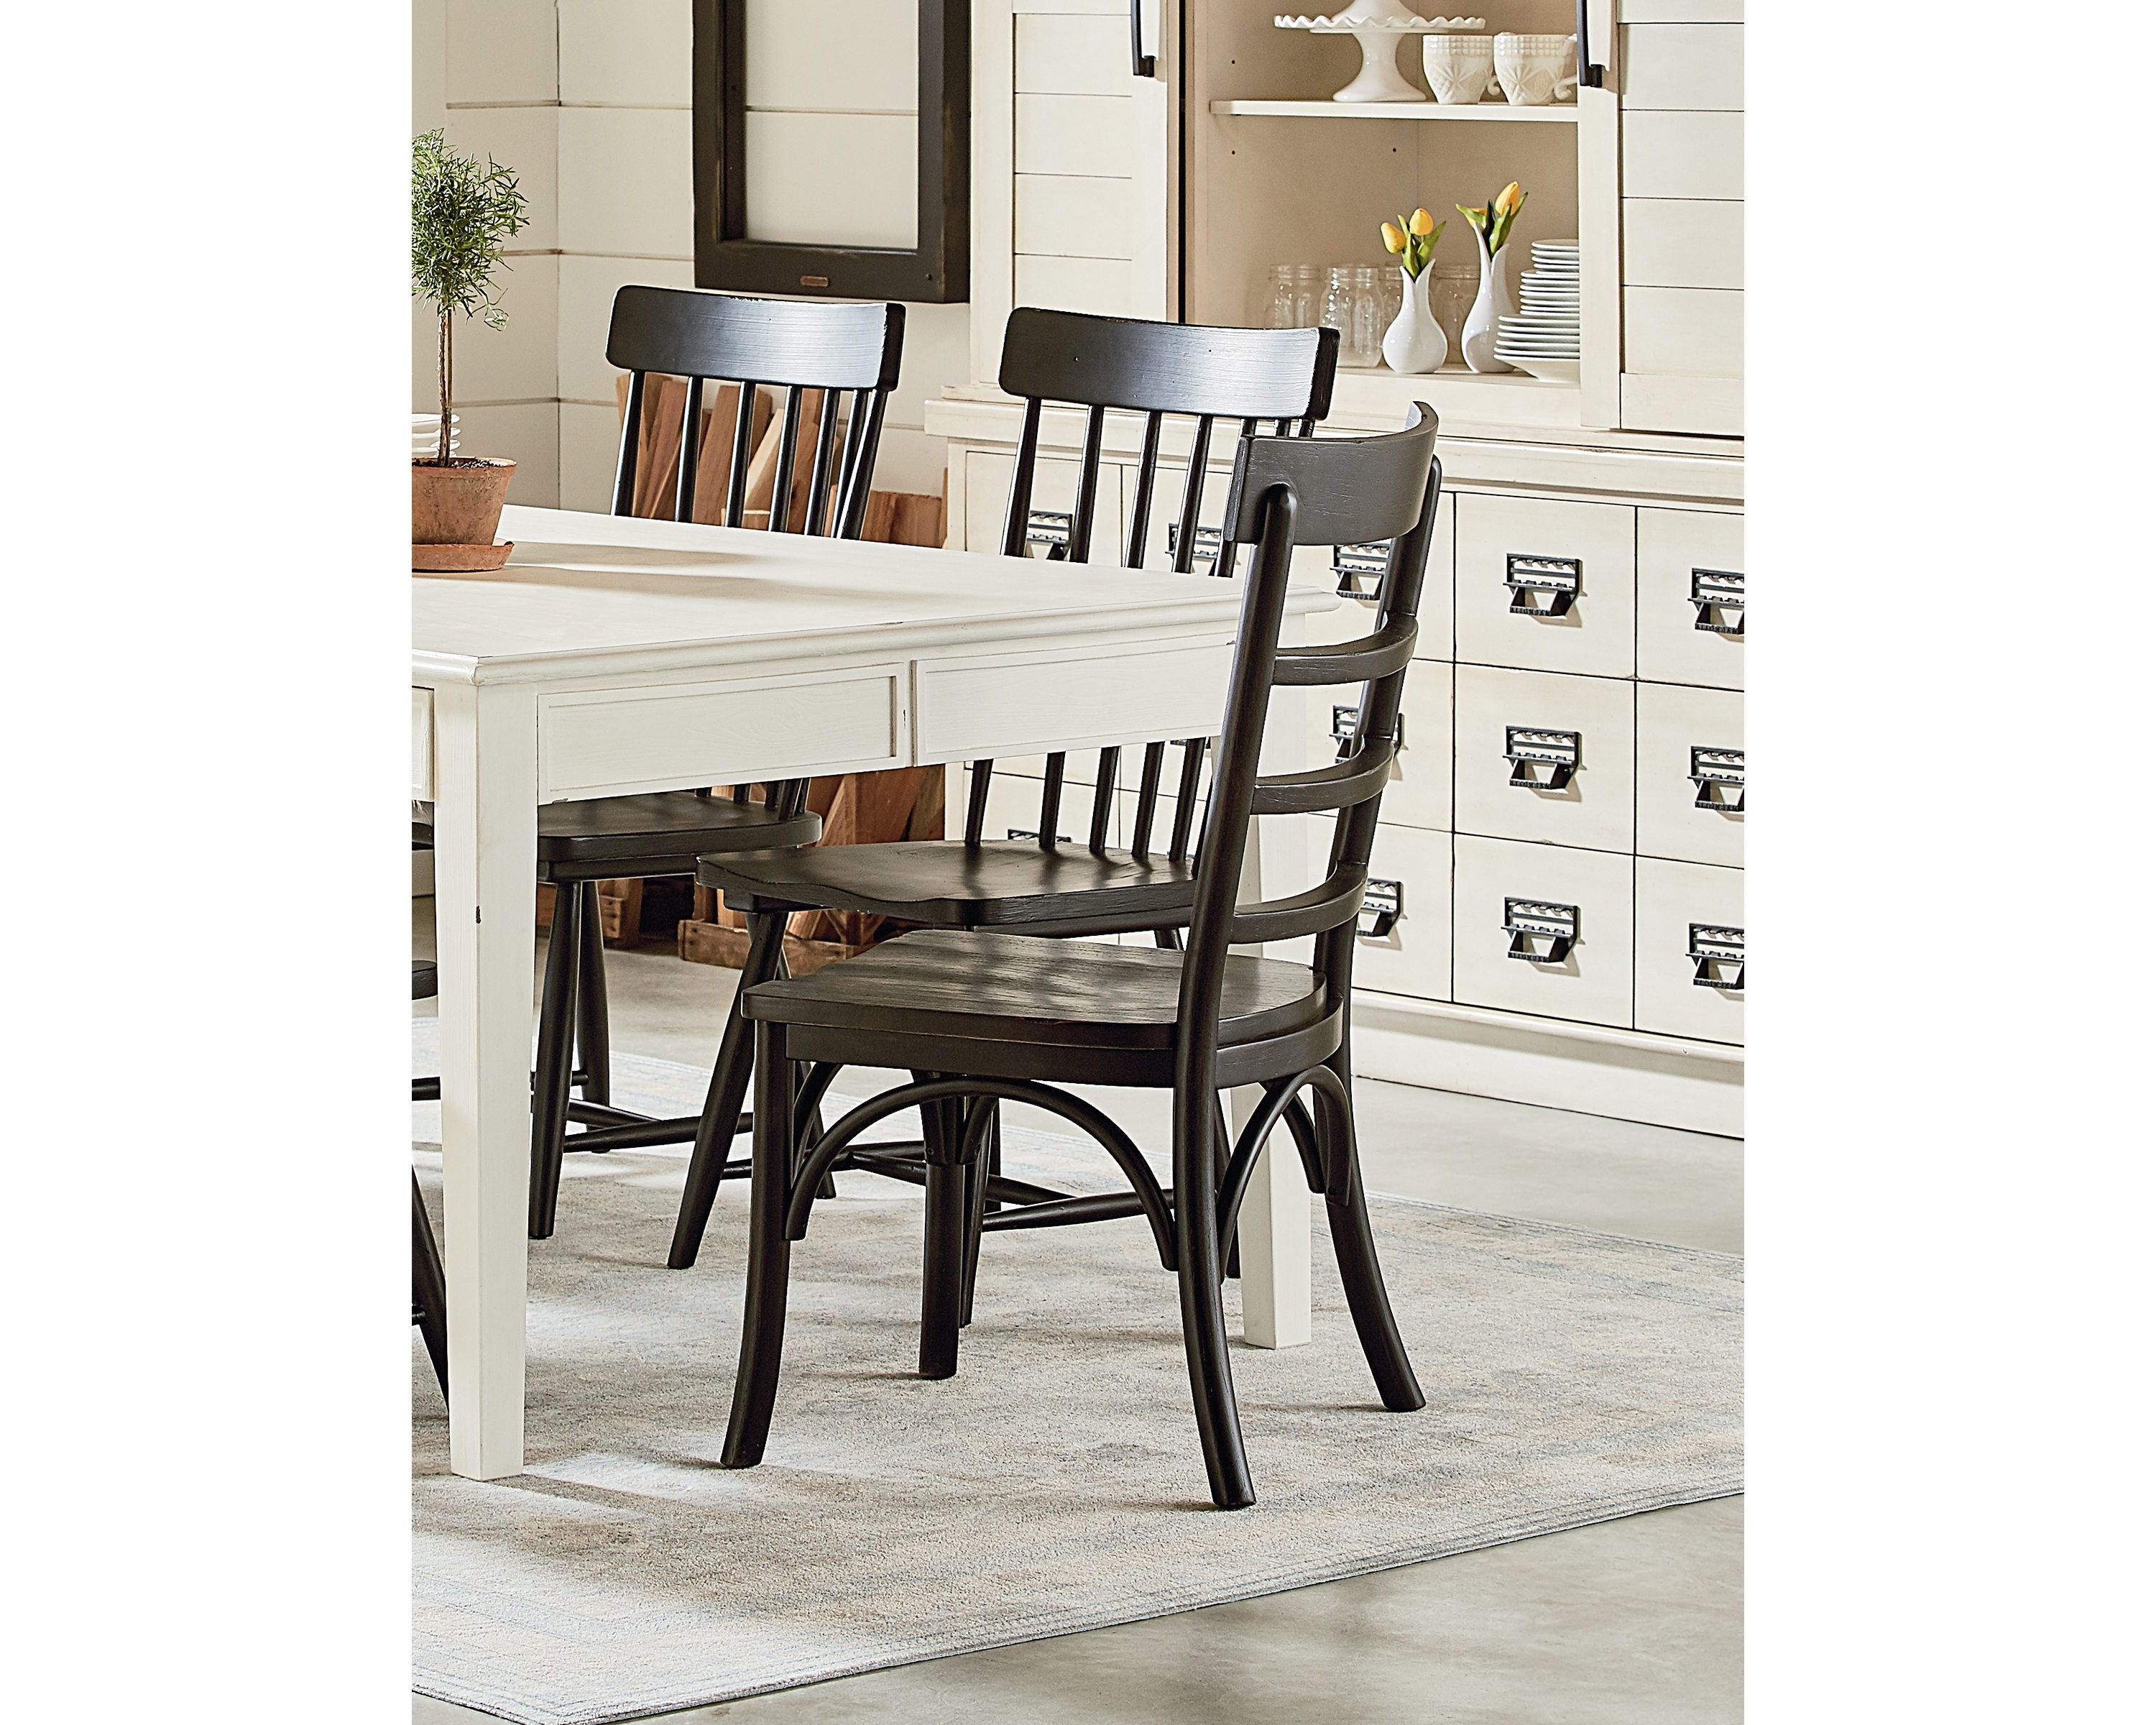 Magnolia Home Harper Patina Side Chairs Throughout Favorite Harper Side Chair – Magnolia Home (View 9 of 20)